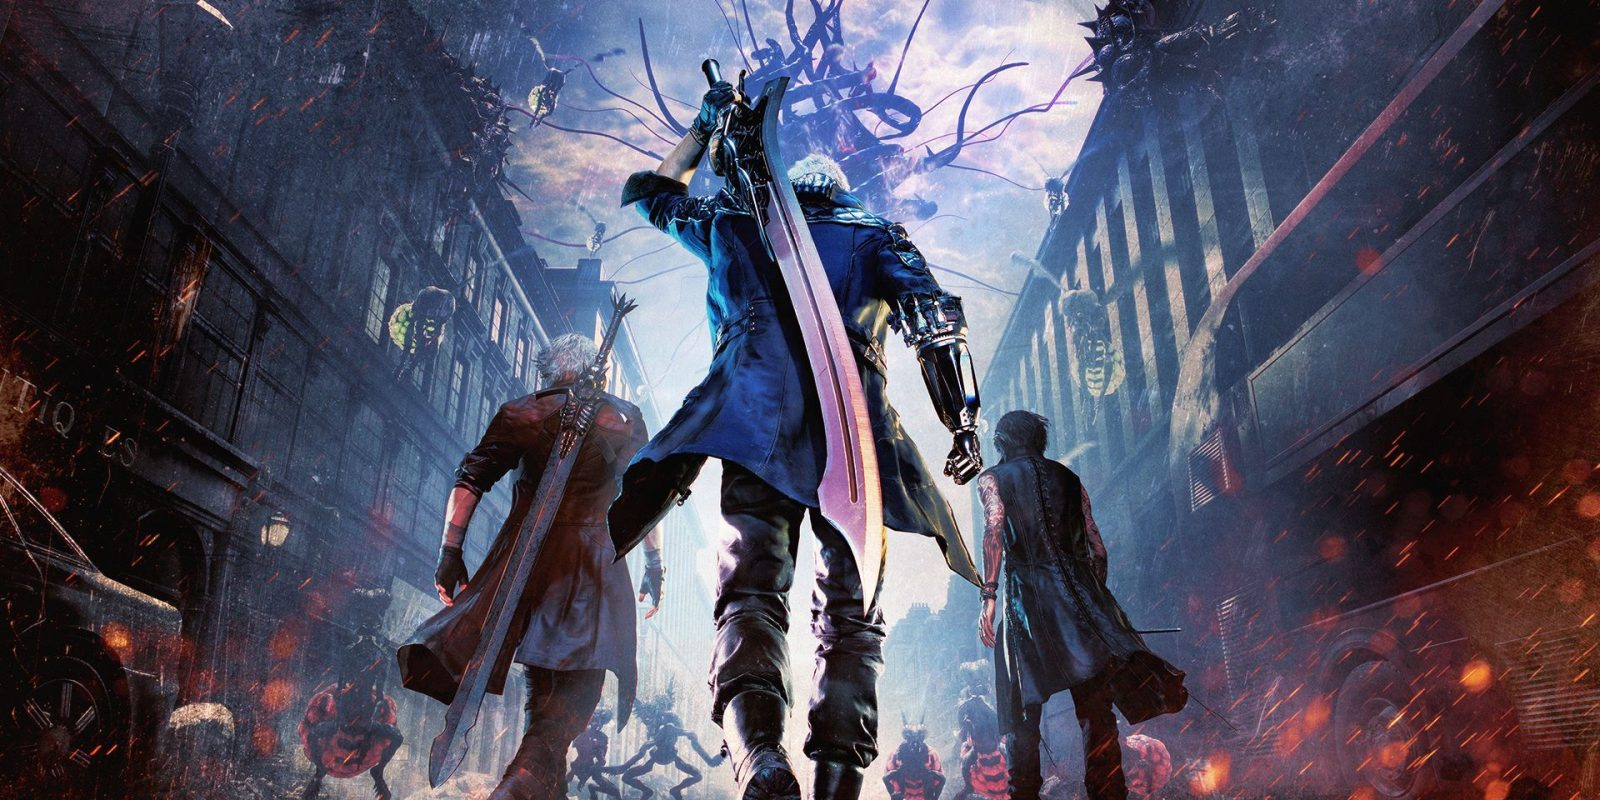 Today's Best Game Deals: Devil May Cry 5 $30, Mario Kart 8 Deluxe $42.50, more